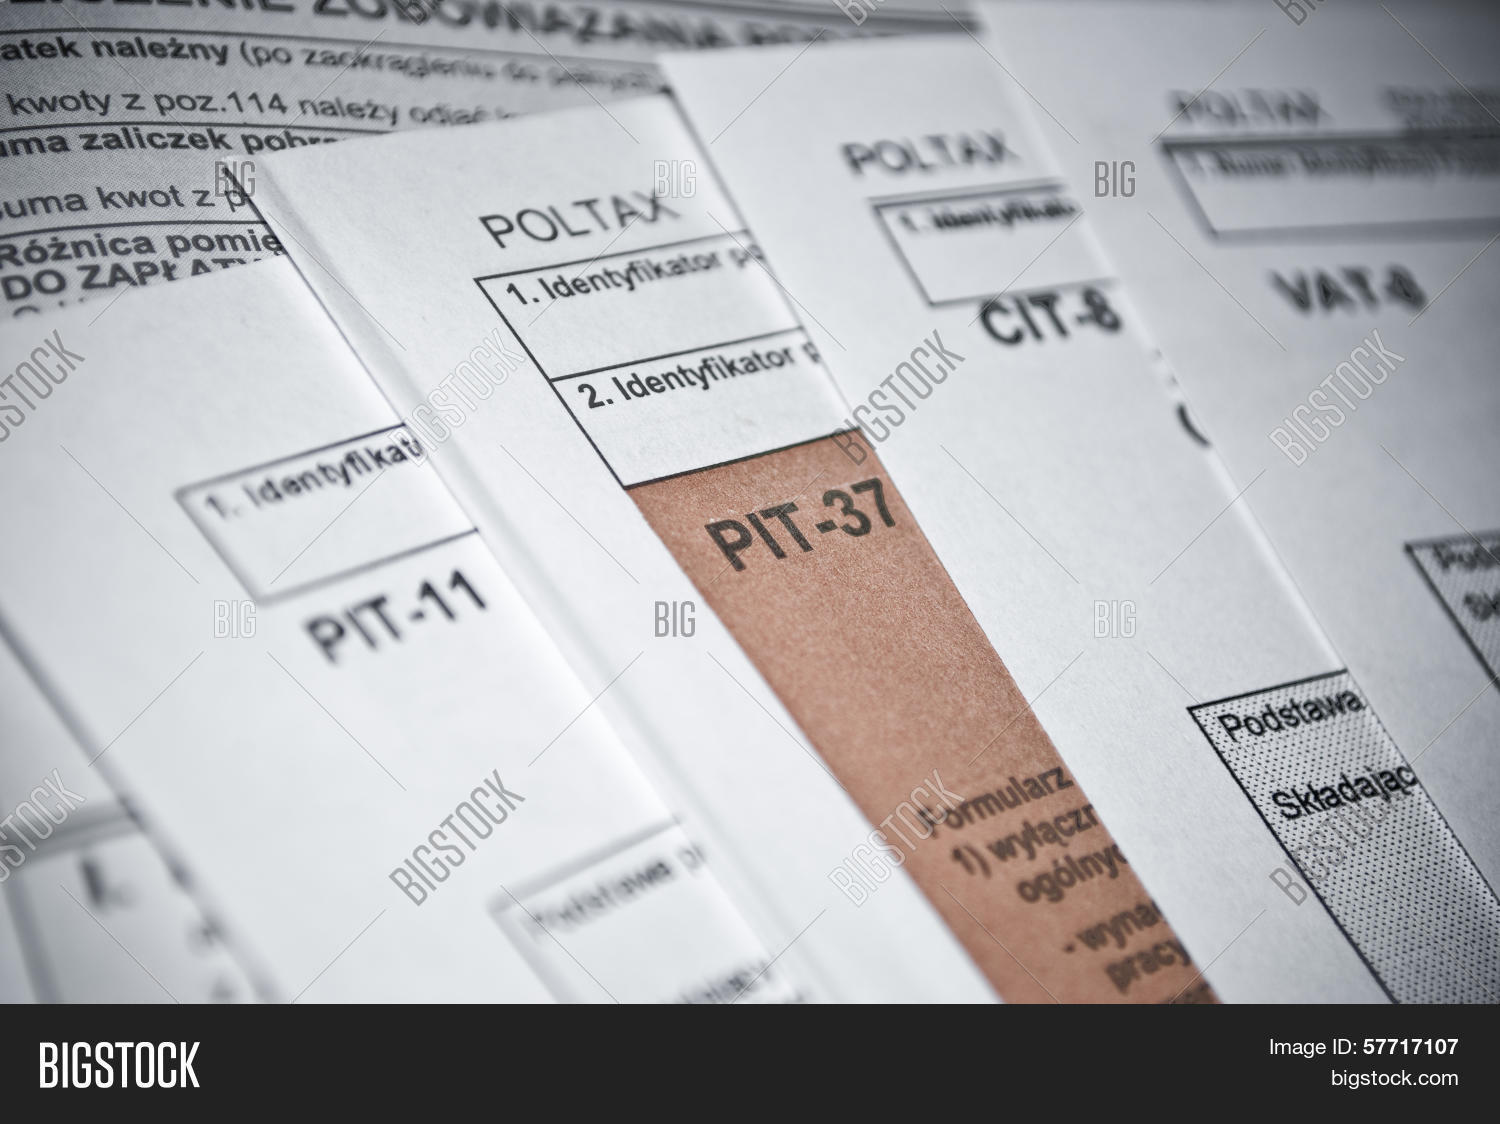 37,1040,abstract,accountant,american,annual,background,balance,bill,budget,business,calculate,calculator,cash,cit,company,concept,document,entrepreneurship,figure,fill,finance,financial,form,income,individual,irs,law,money,office,outcome,paper,paperwork,payment,personal,pit,polish,print,profit,refund,return,savings,social,tax,taxation,tax time,time,value,vat,white